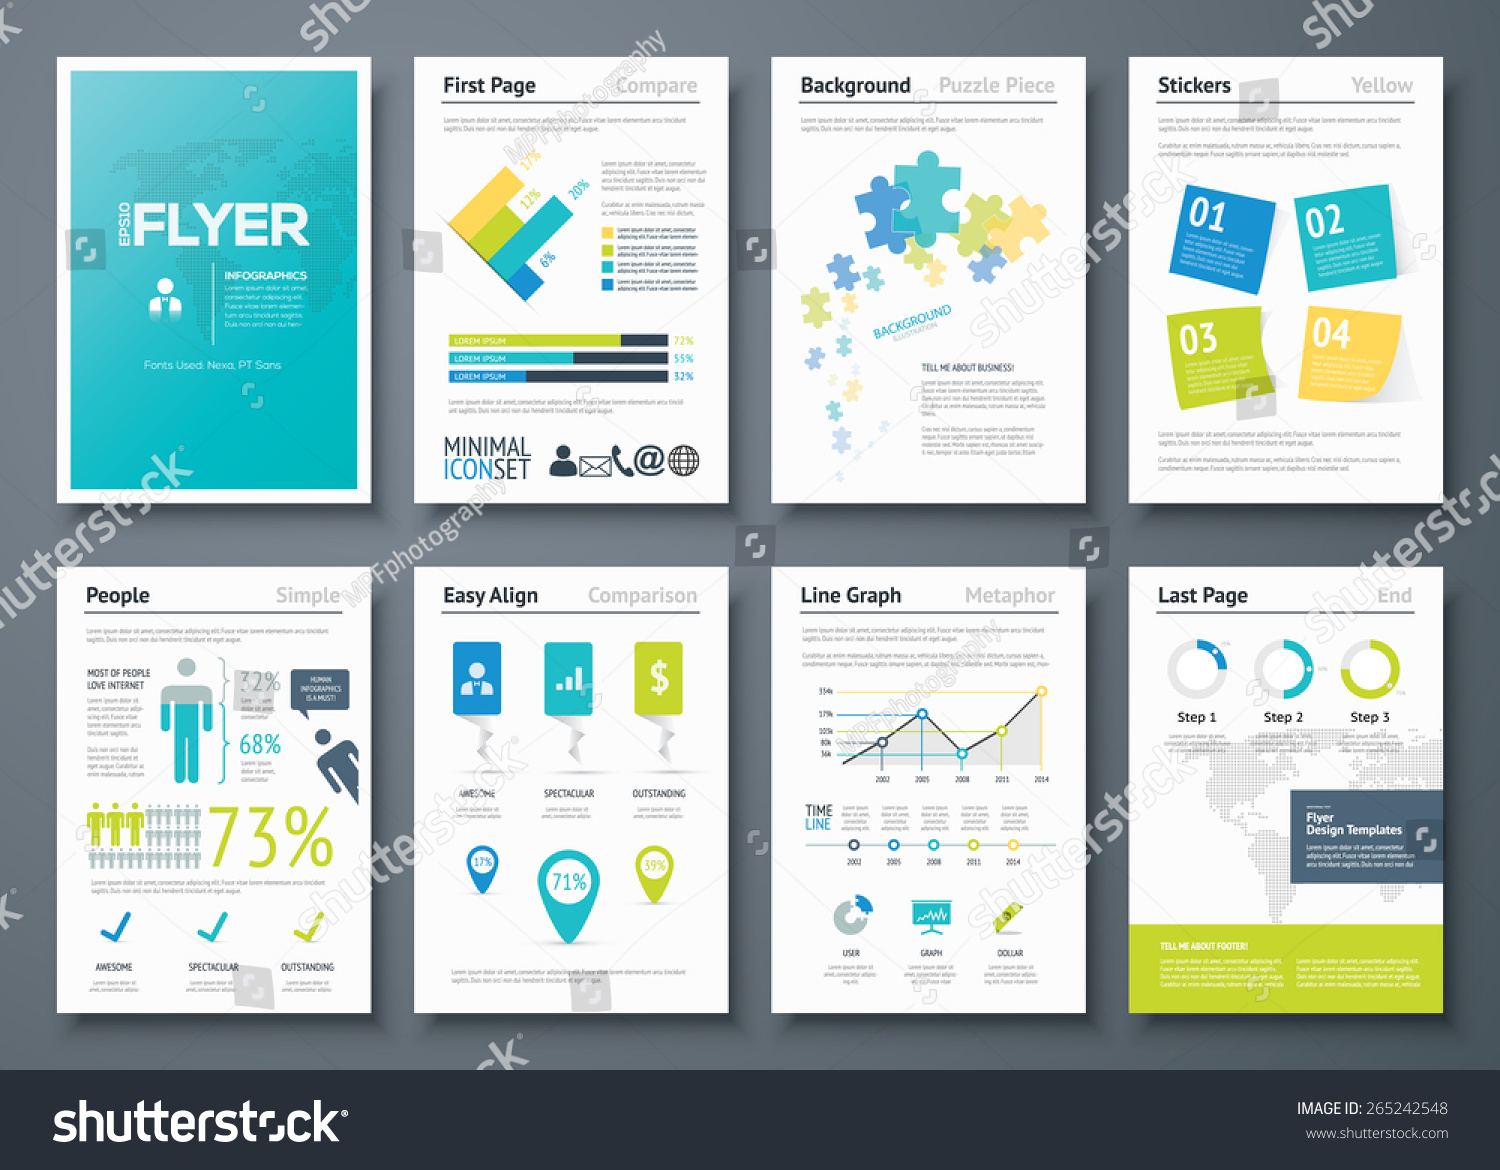 infographic flyer templates business vector elements stock vector infographic flyer templates and business vector elements use in website corporate brochure advertising